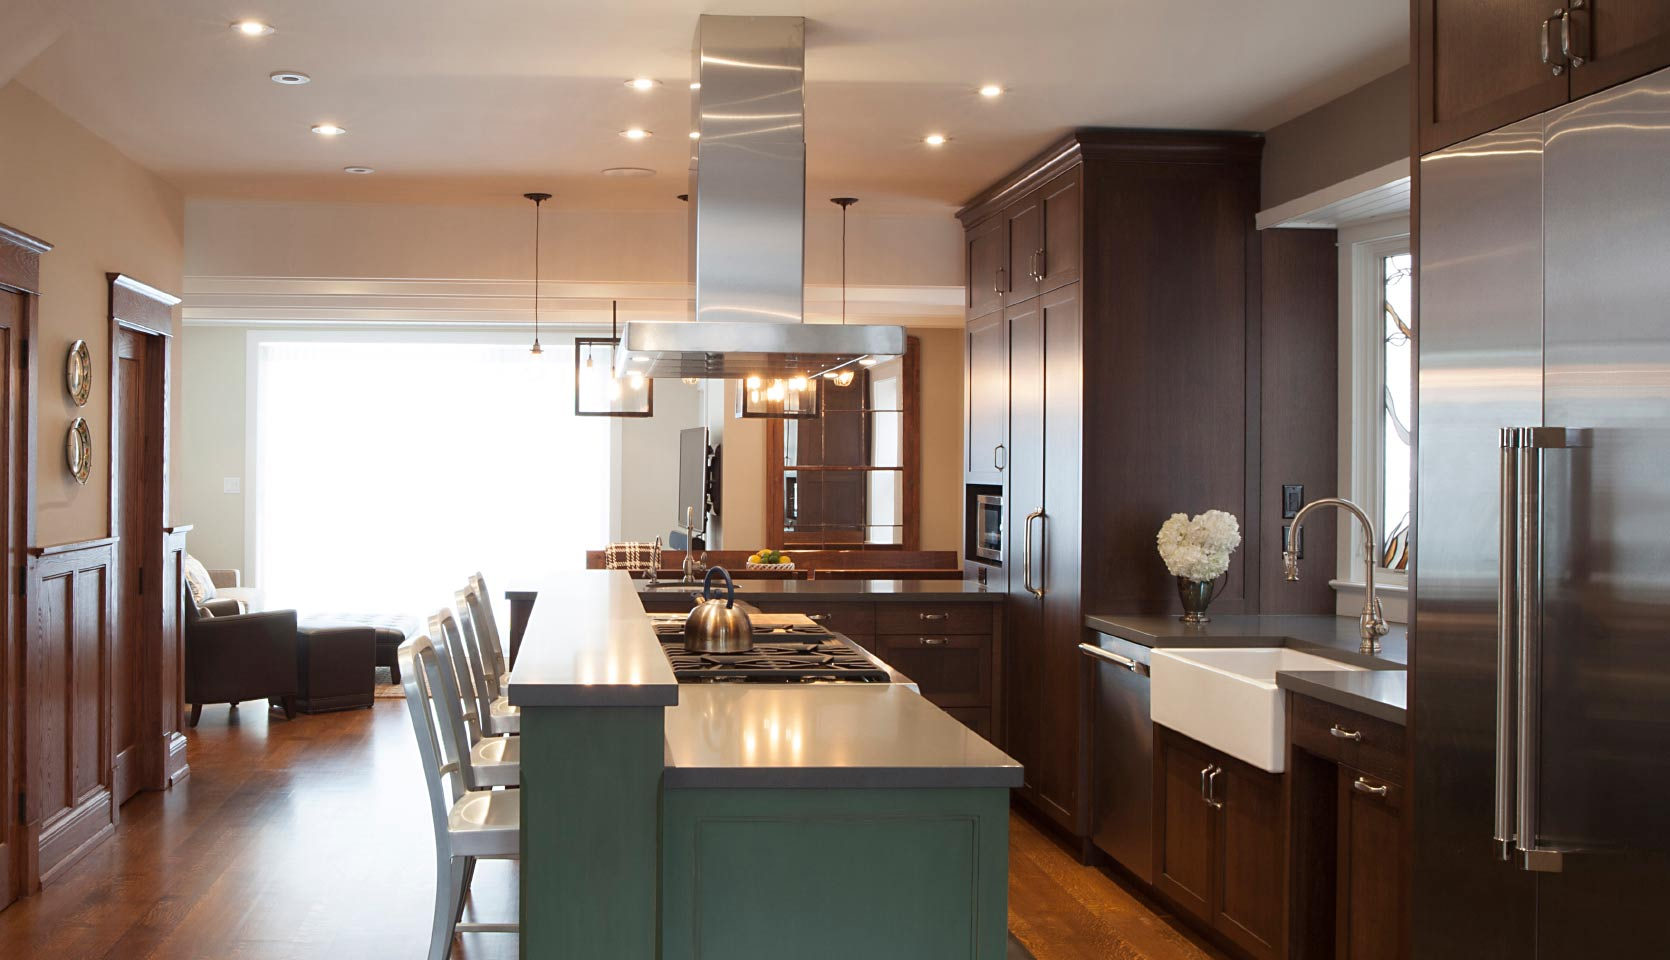 Playter-Estates-home-renovation-with-gourmet-kitchen-mahogany-cabinets-and-island